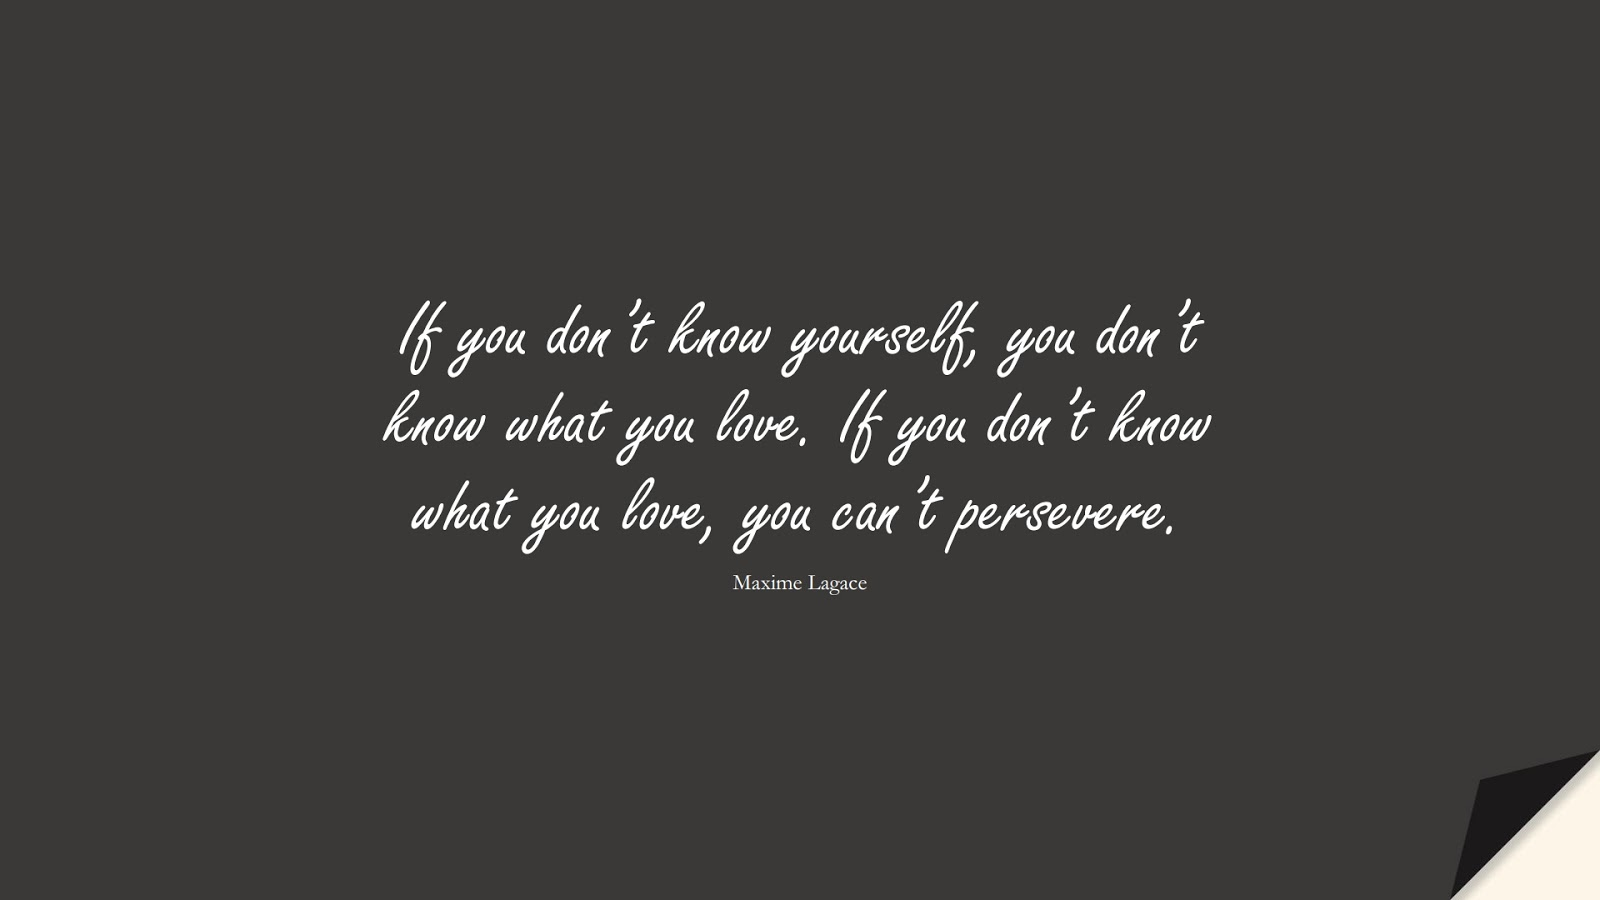 If you don't know yourself, you don't know what you love. If you don't know what you love, you can't persevere. (Maxime Lagace);  #PerseveranceQuotes